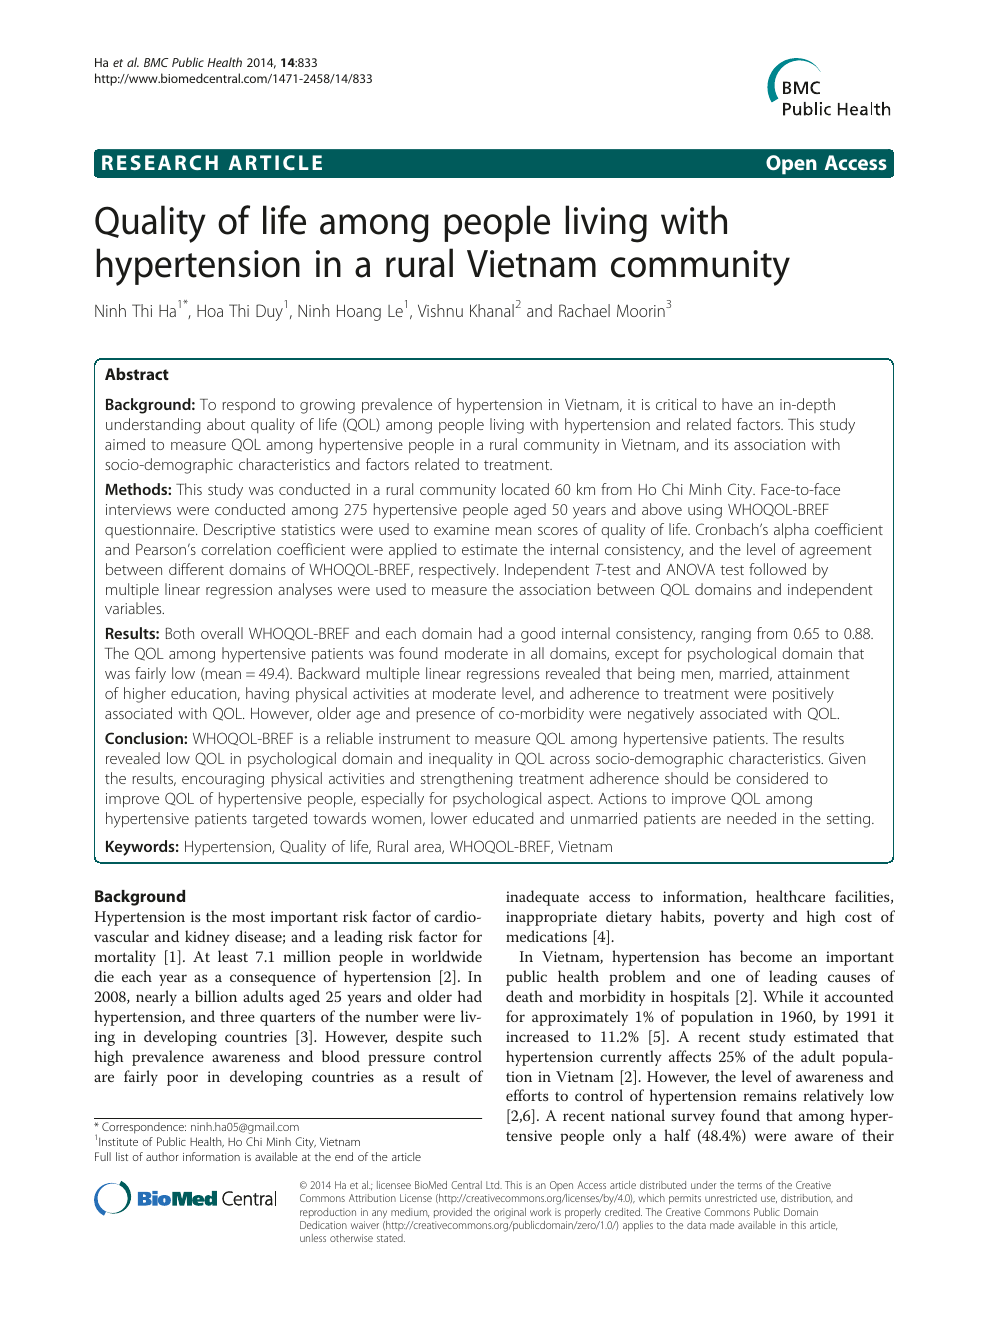 Quality of life among people living with hypertension in a